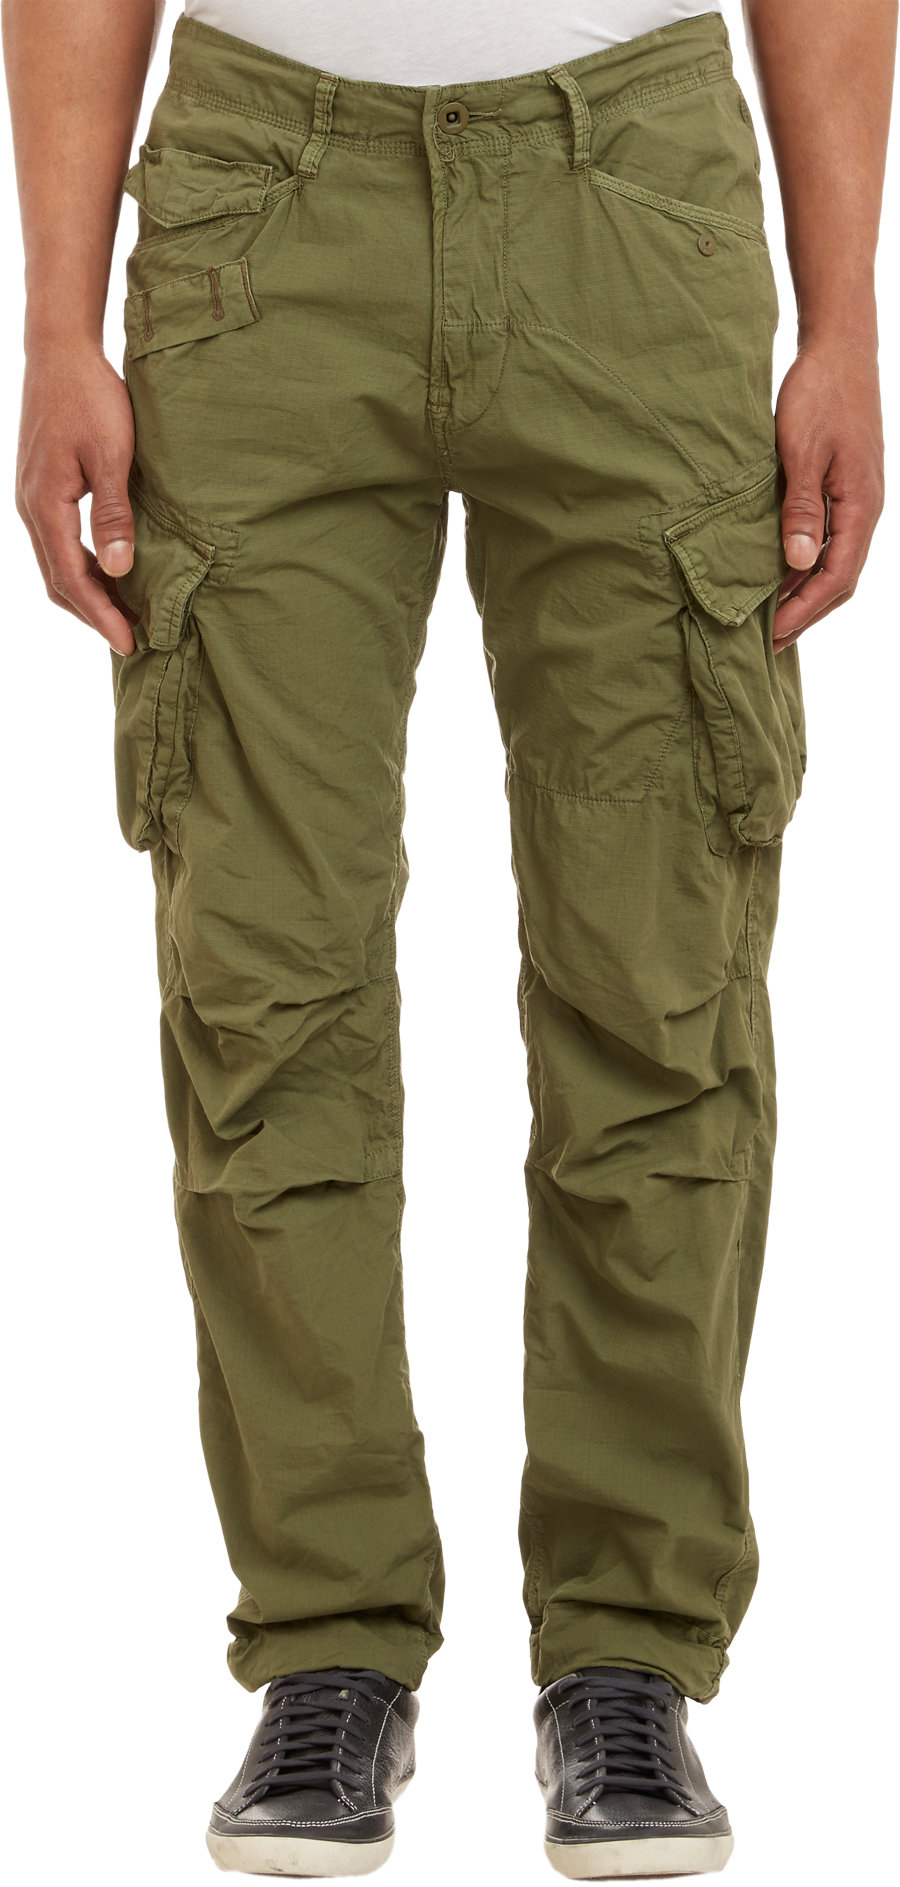 G-star raw Rovic Tapered Cargo Pants Olive in Green for Men | Lyst